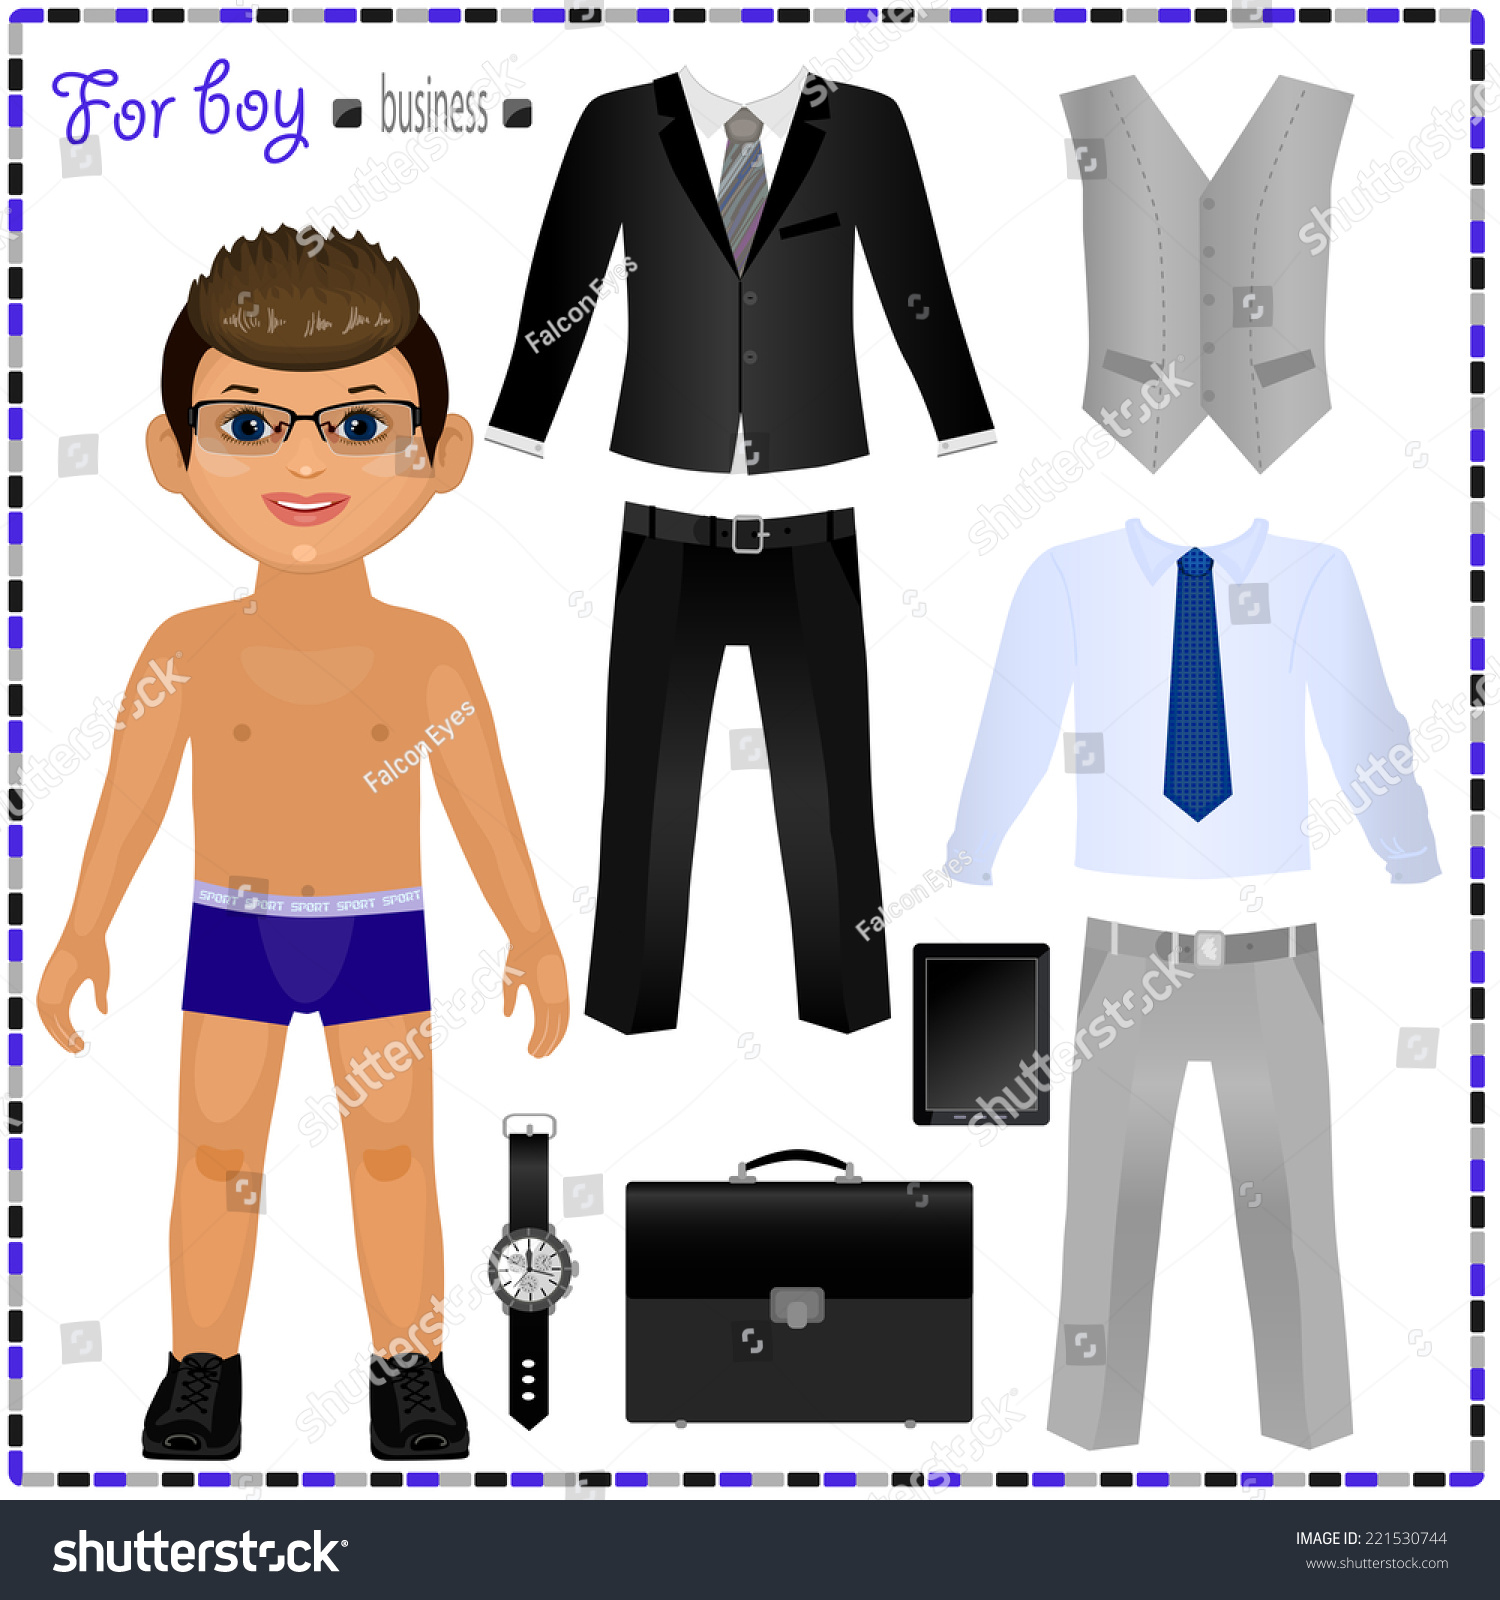 paper doll set clothes business style stock vector royalty free